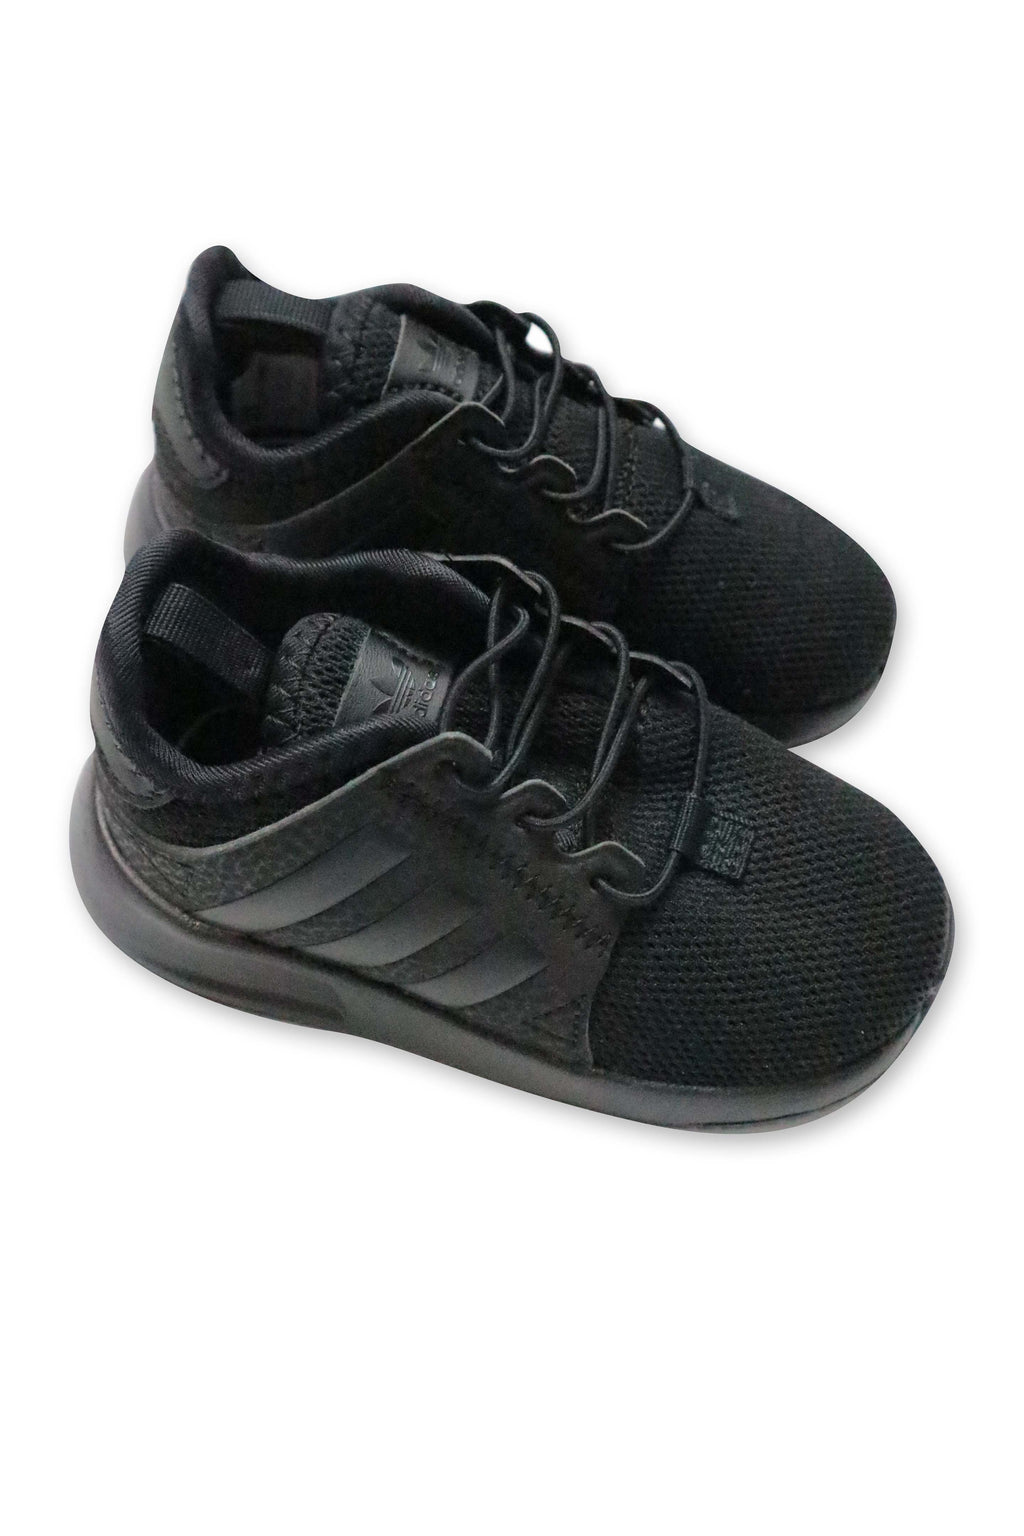 Adidas Shoes size US 6